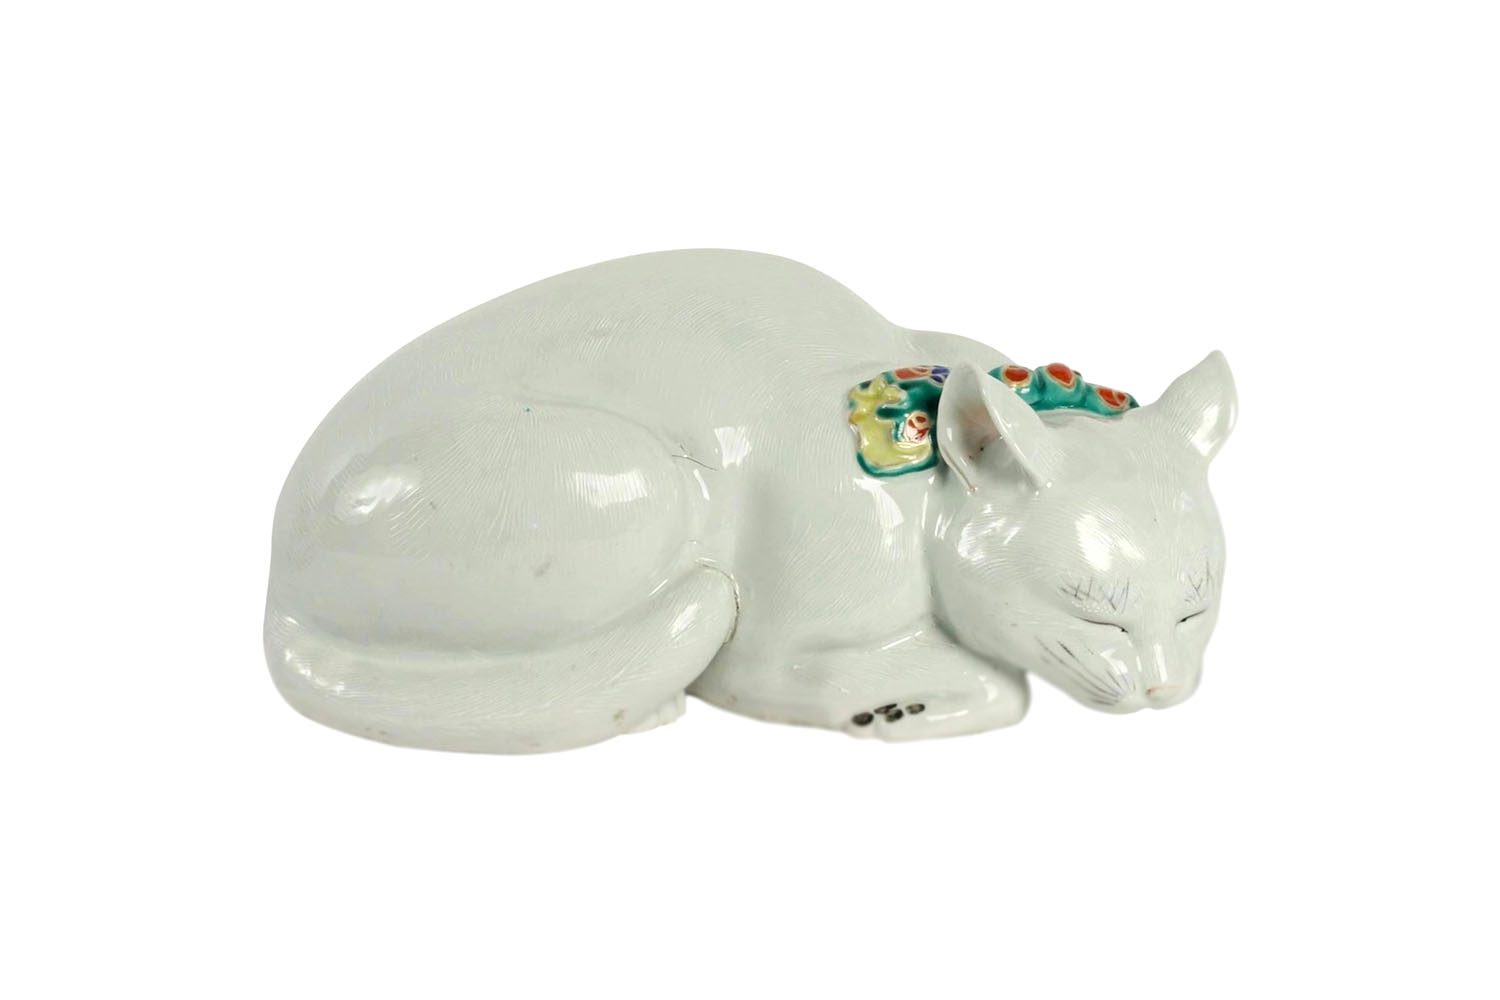 Boutique Art Et Decoration Cat In Japanese Porcelain Chez Perret Et Vibert Circa 1880